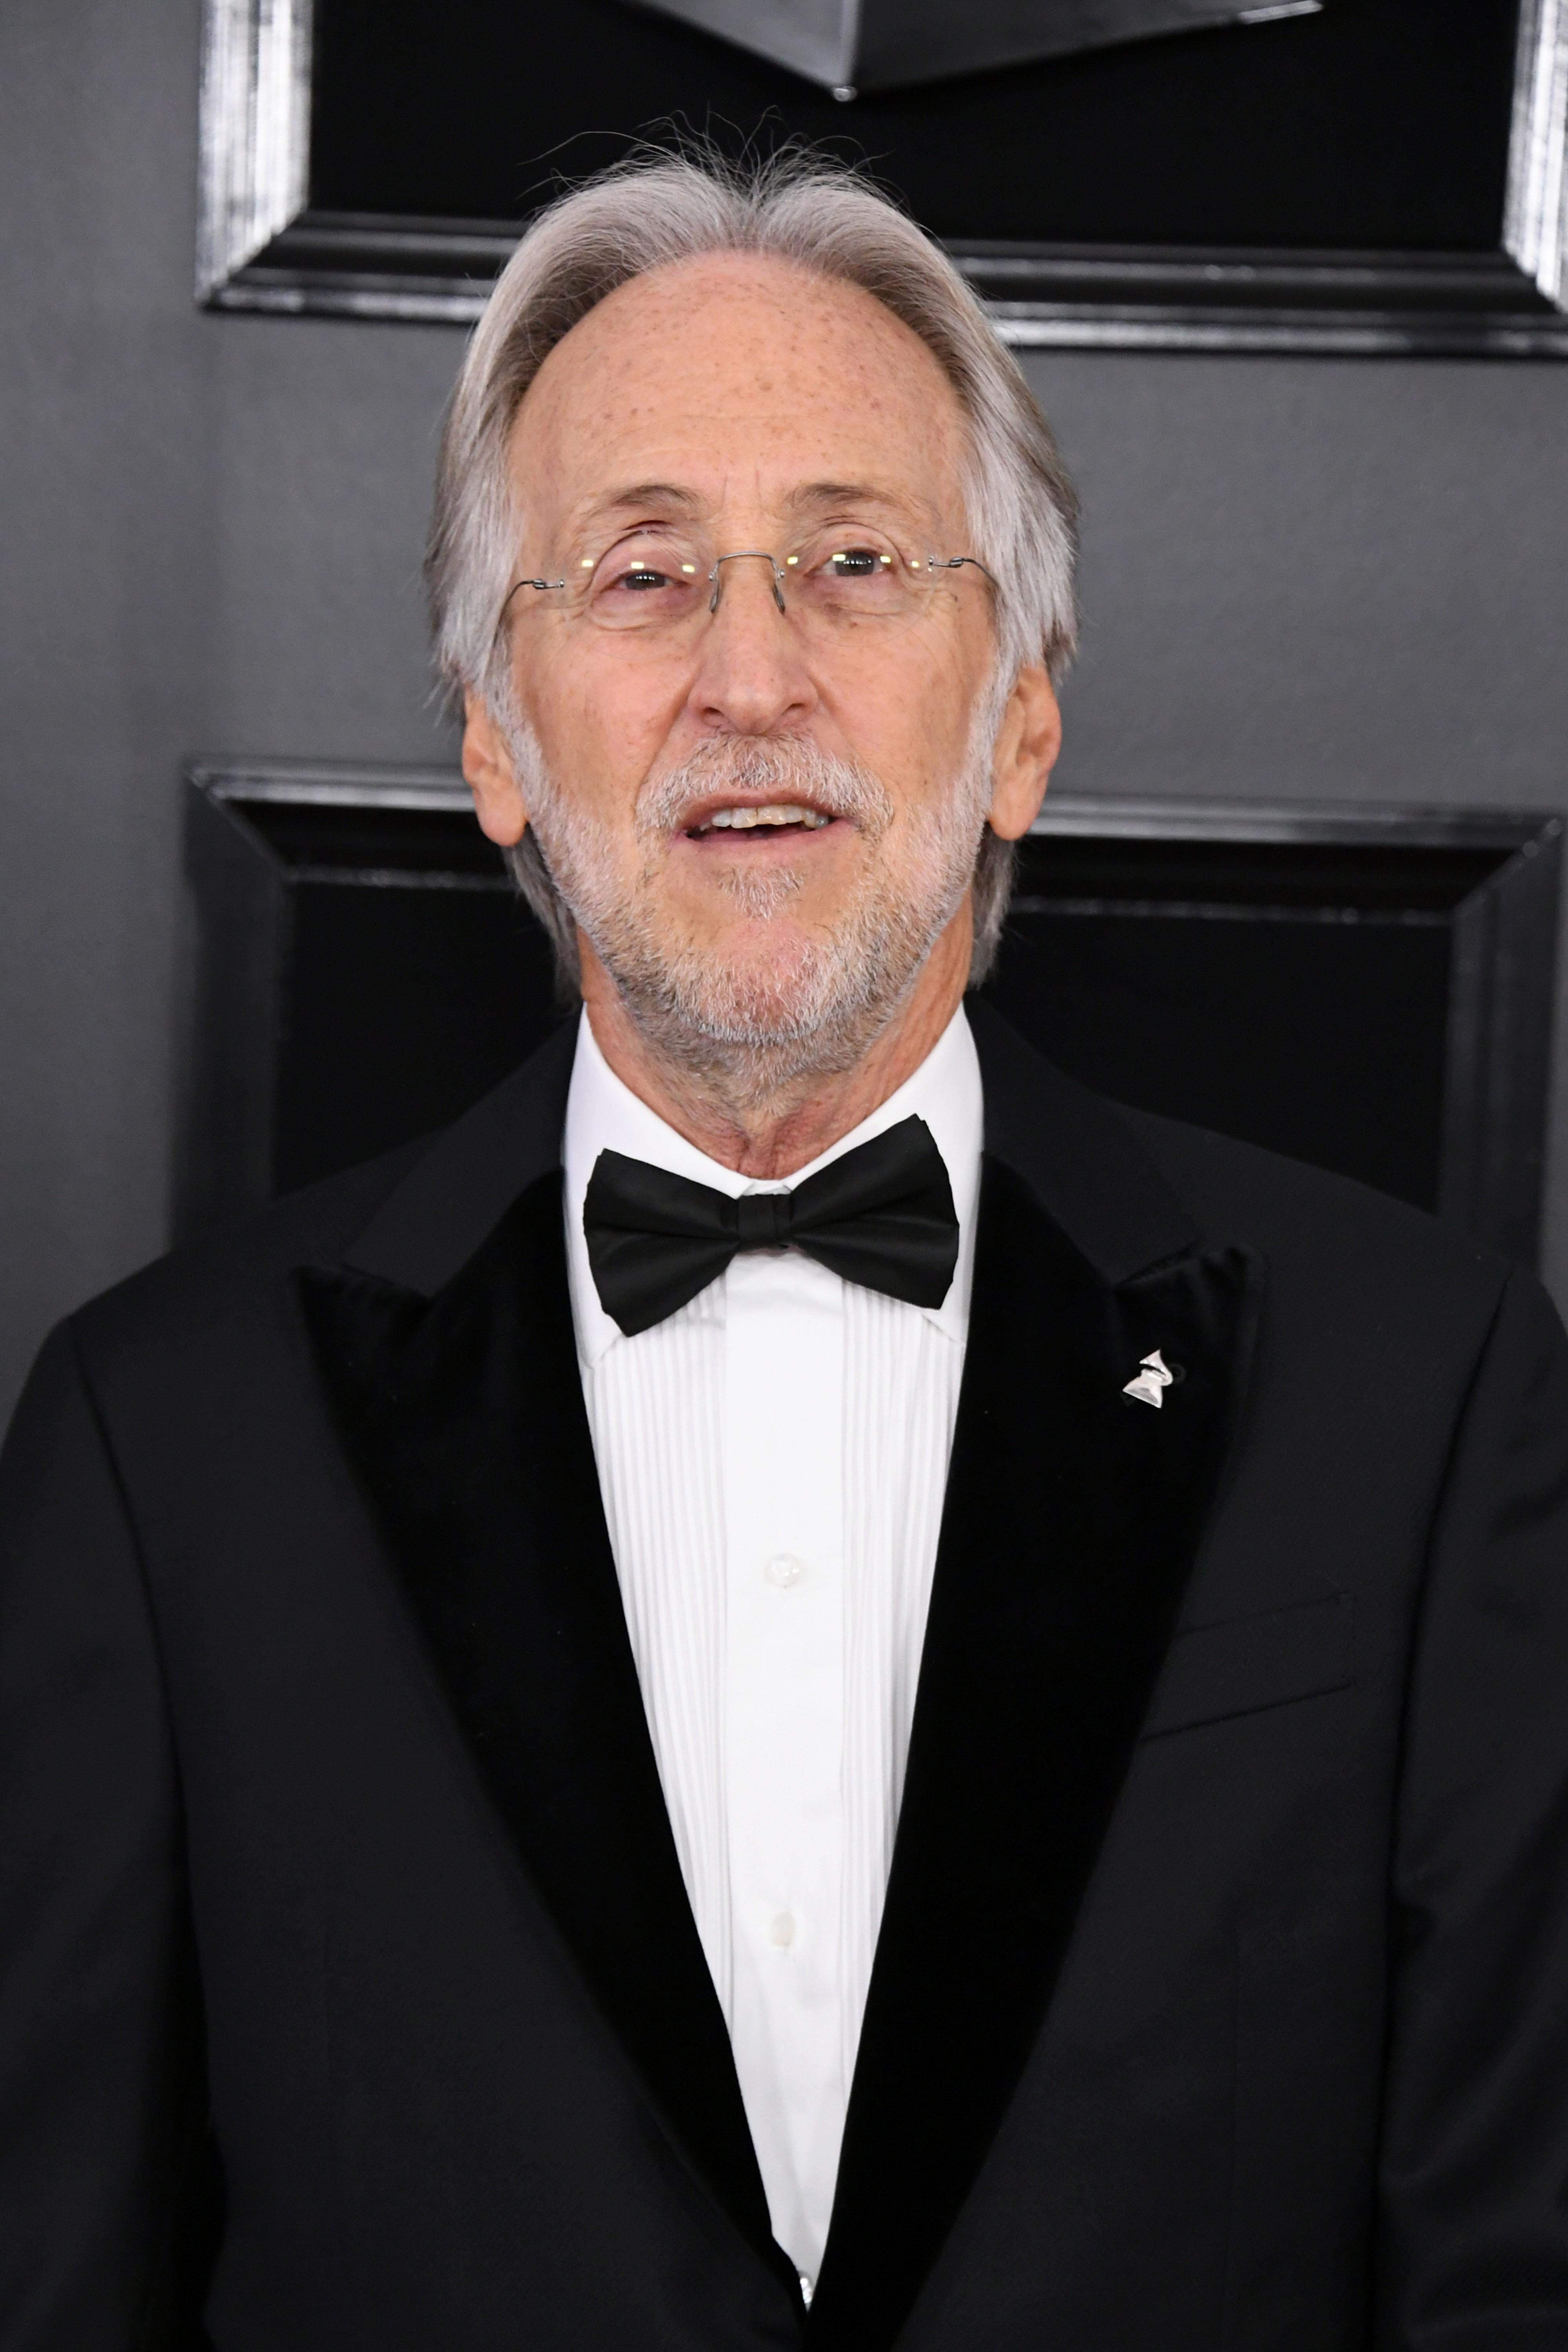 Recording Academy President Neil Portnow attends the 61st Annual GRAMMY Awards at Staples Center on February 10, 2019 in Los Angeles, California. (Photo by Jon Kopaloff/Getty Images)